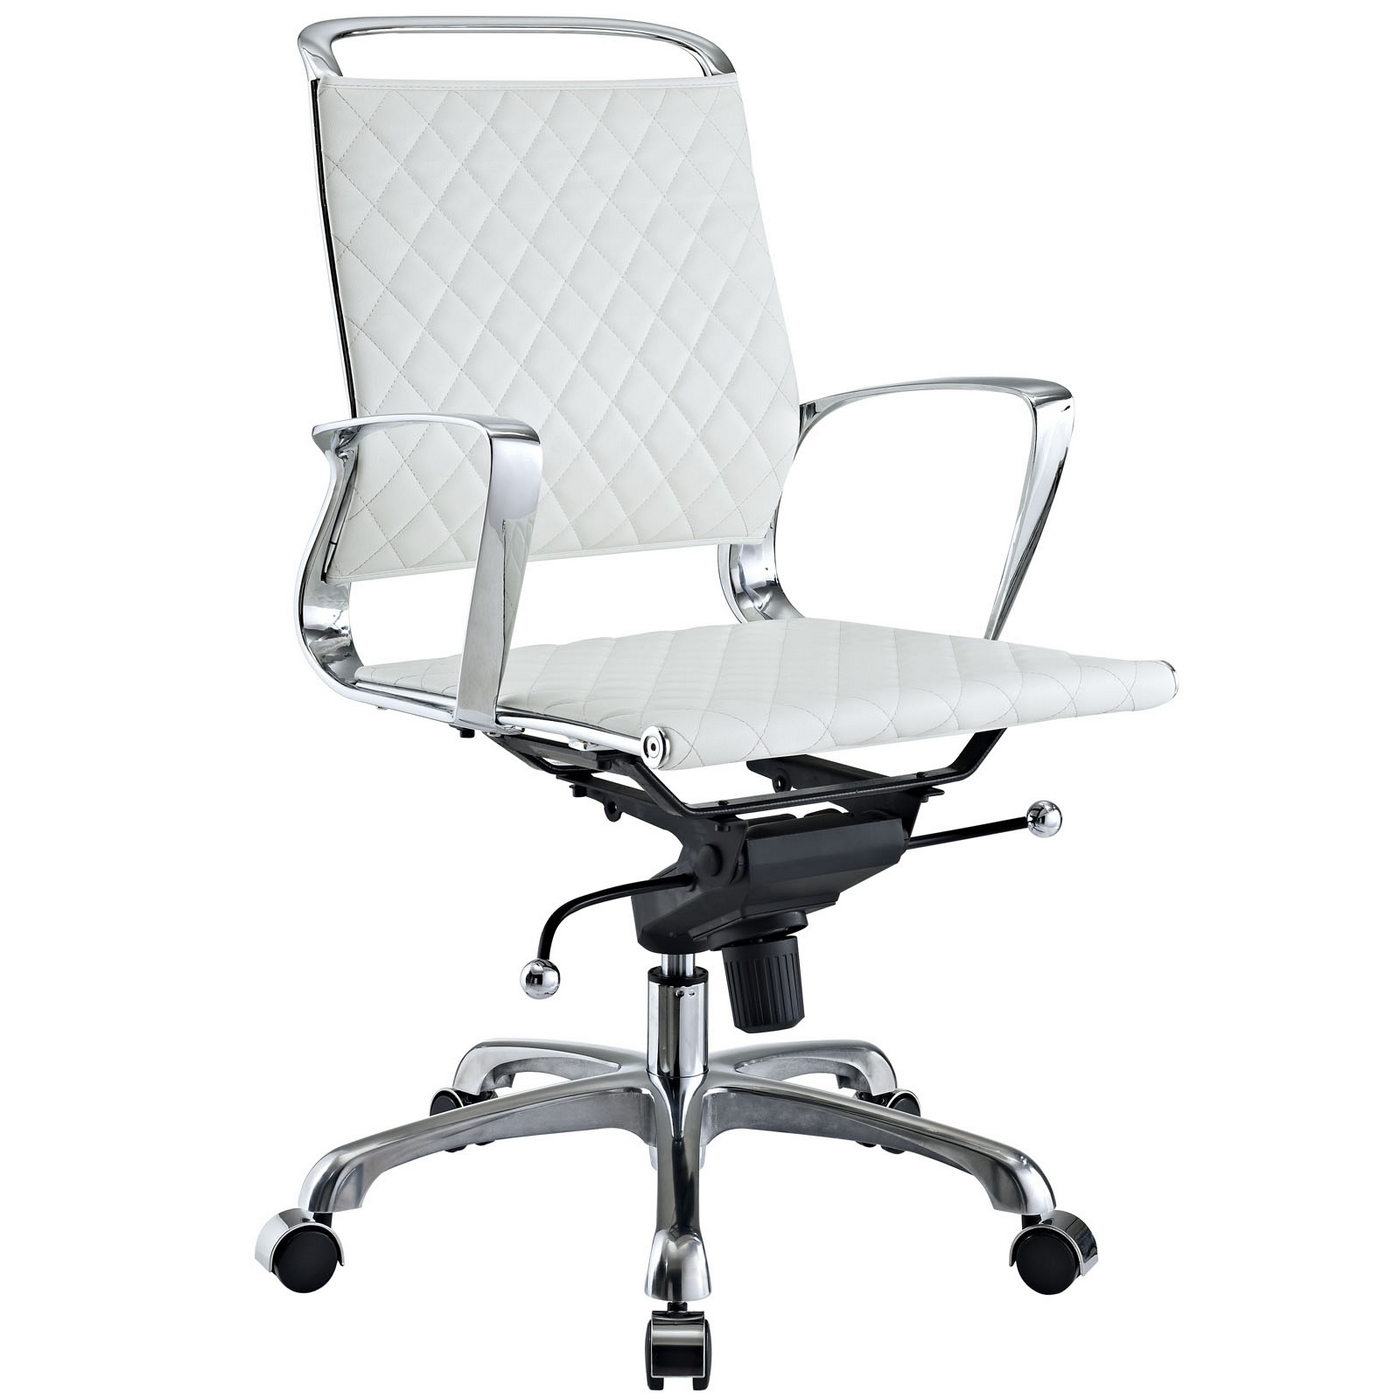 leather and chrome chairs chair gym weight loss vibe modern mid back office with